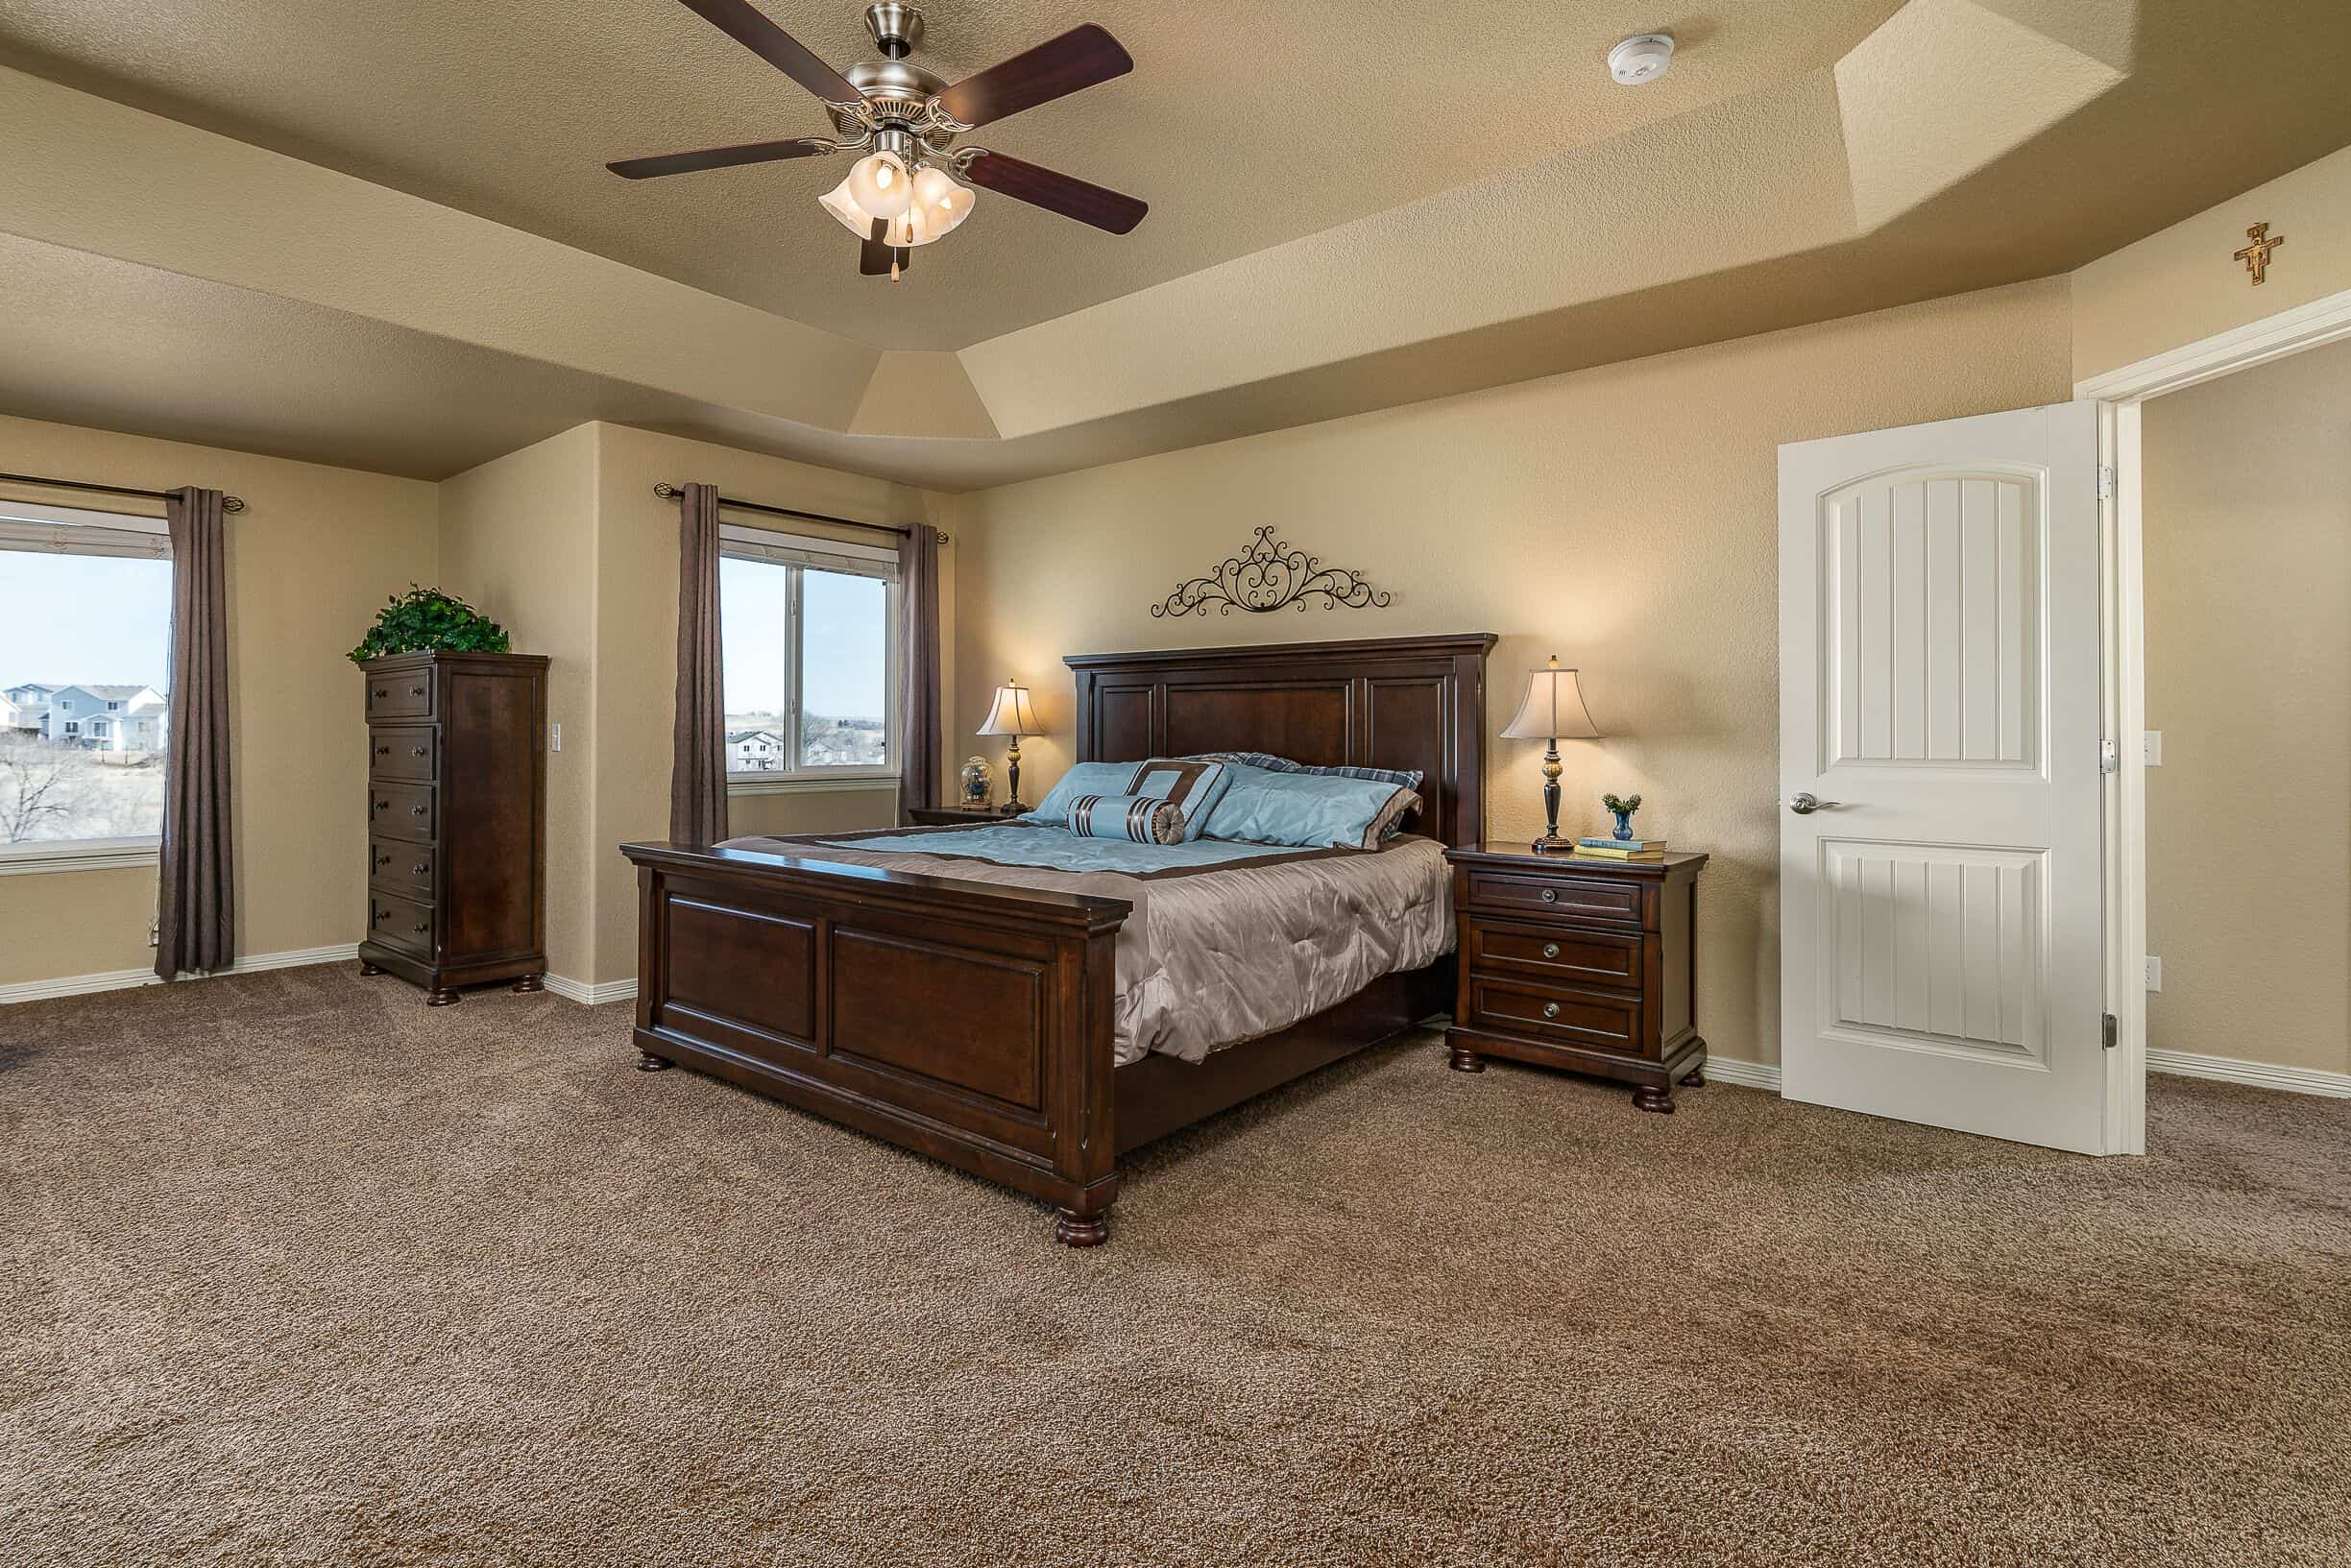 Upper Master Bedroom with Sitting Area